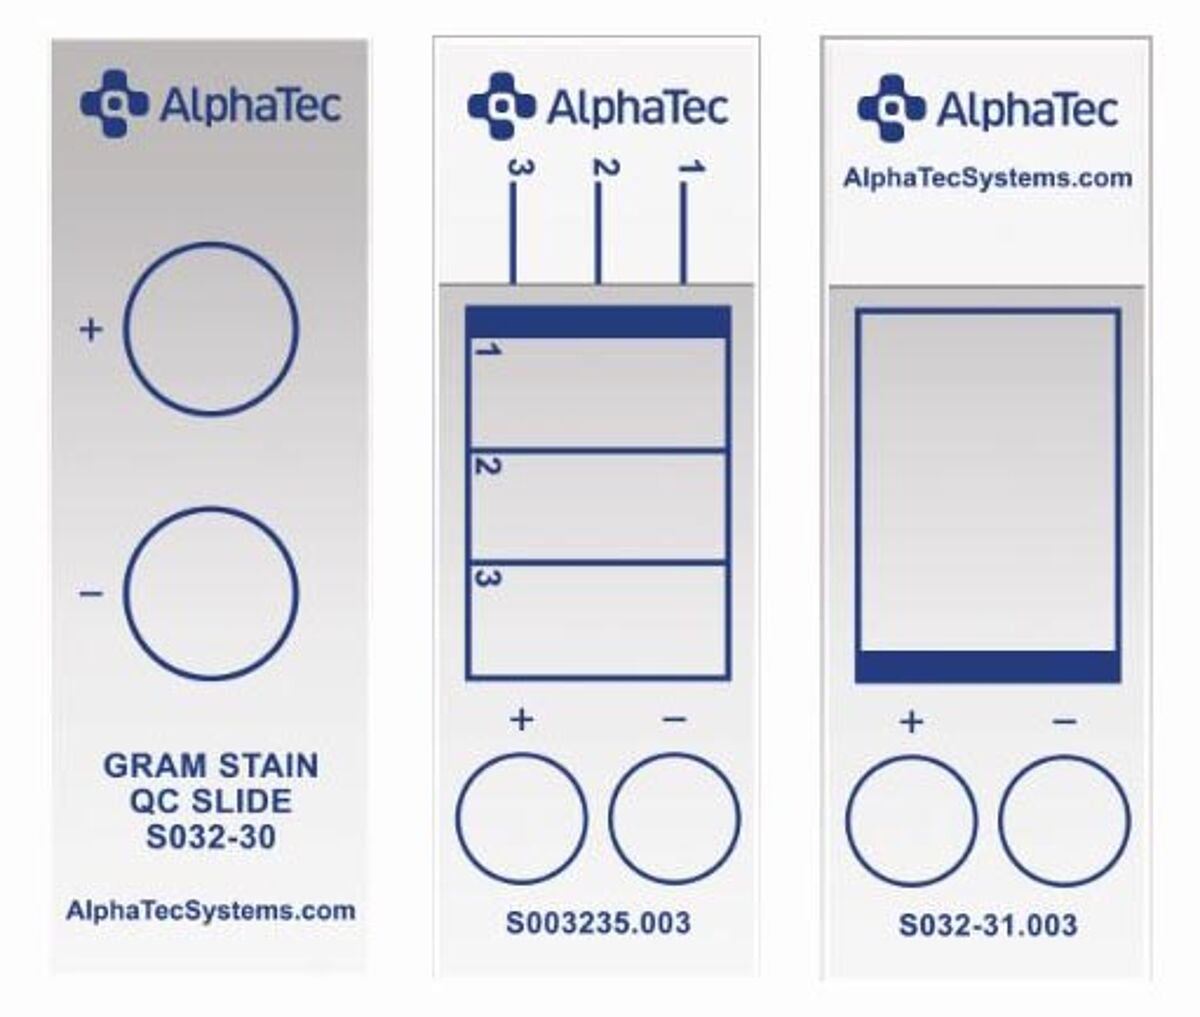 Quality control slides for gram stain by Alpha-Ted